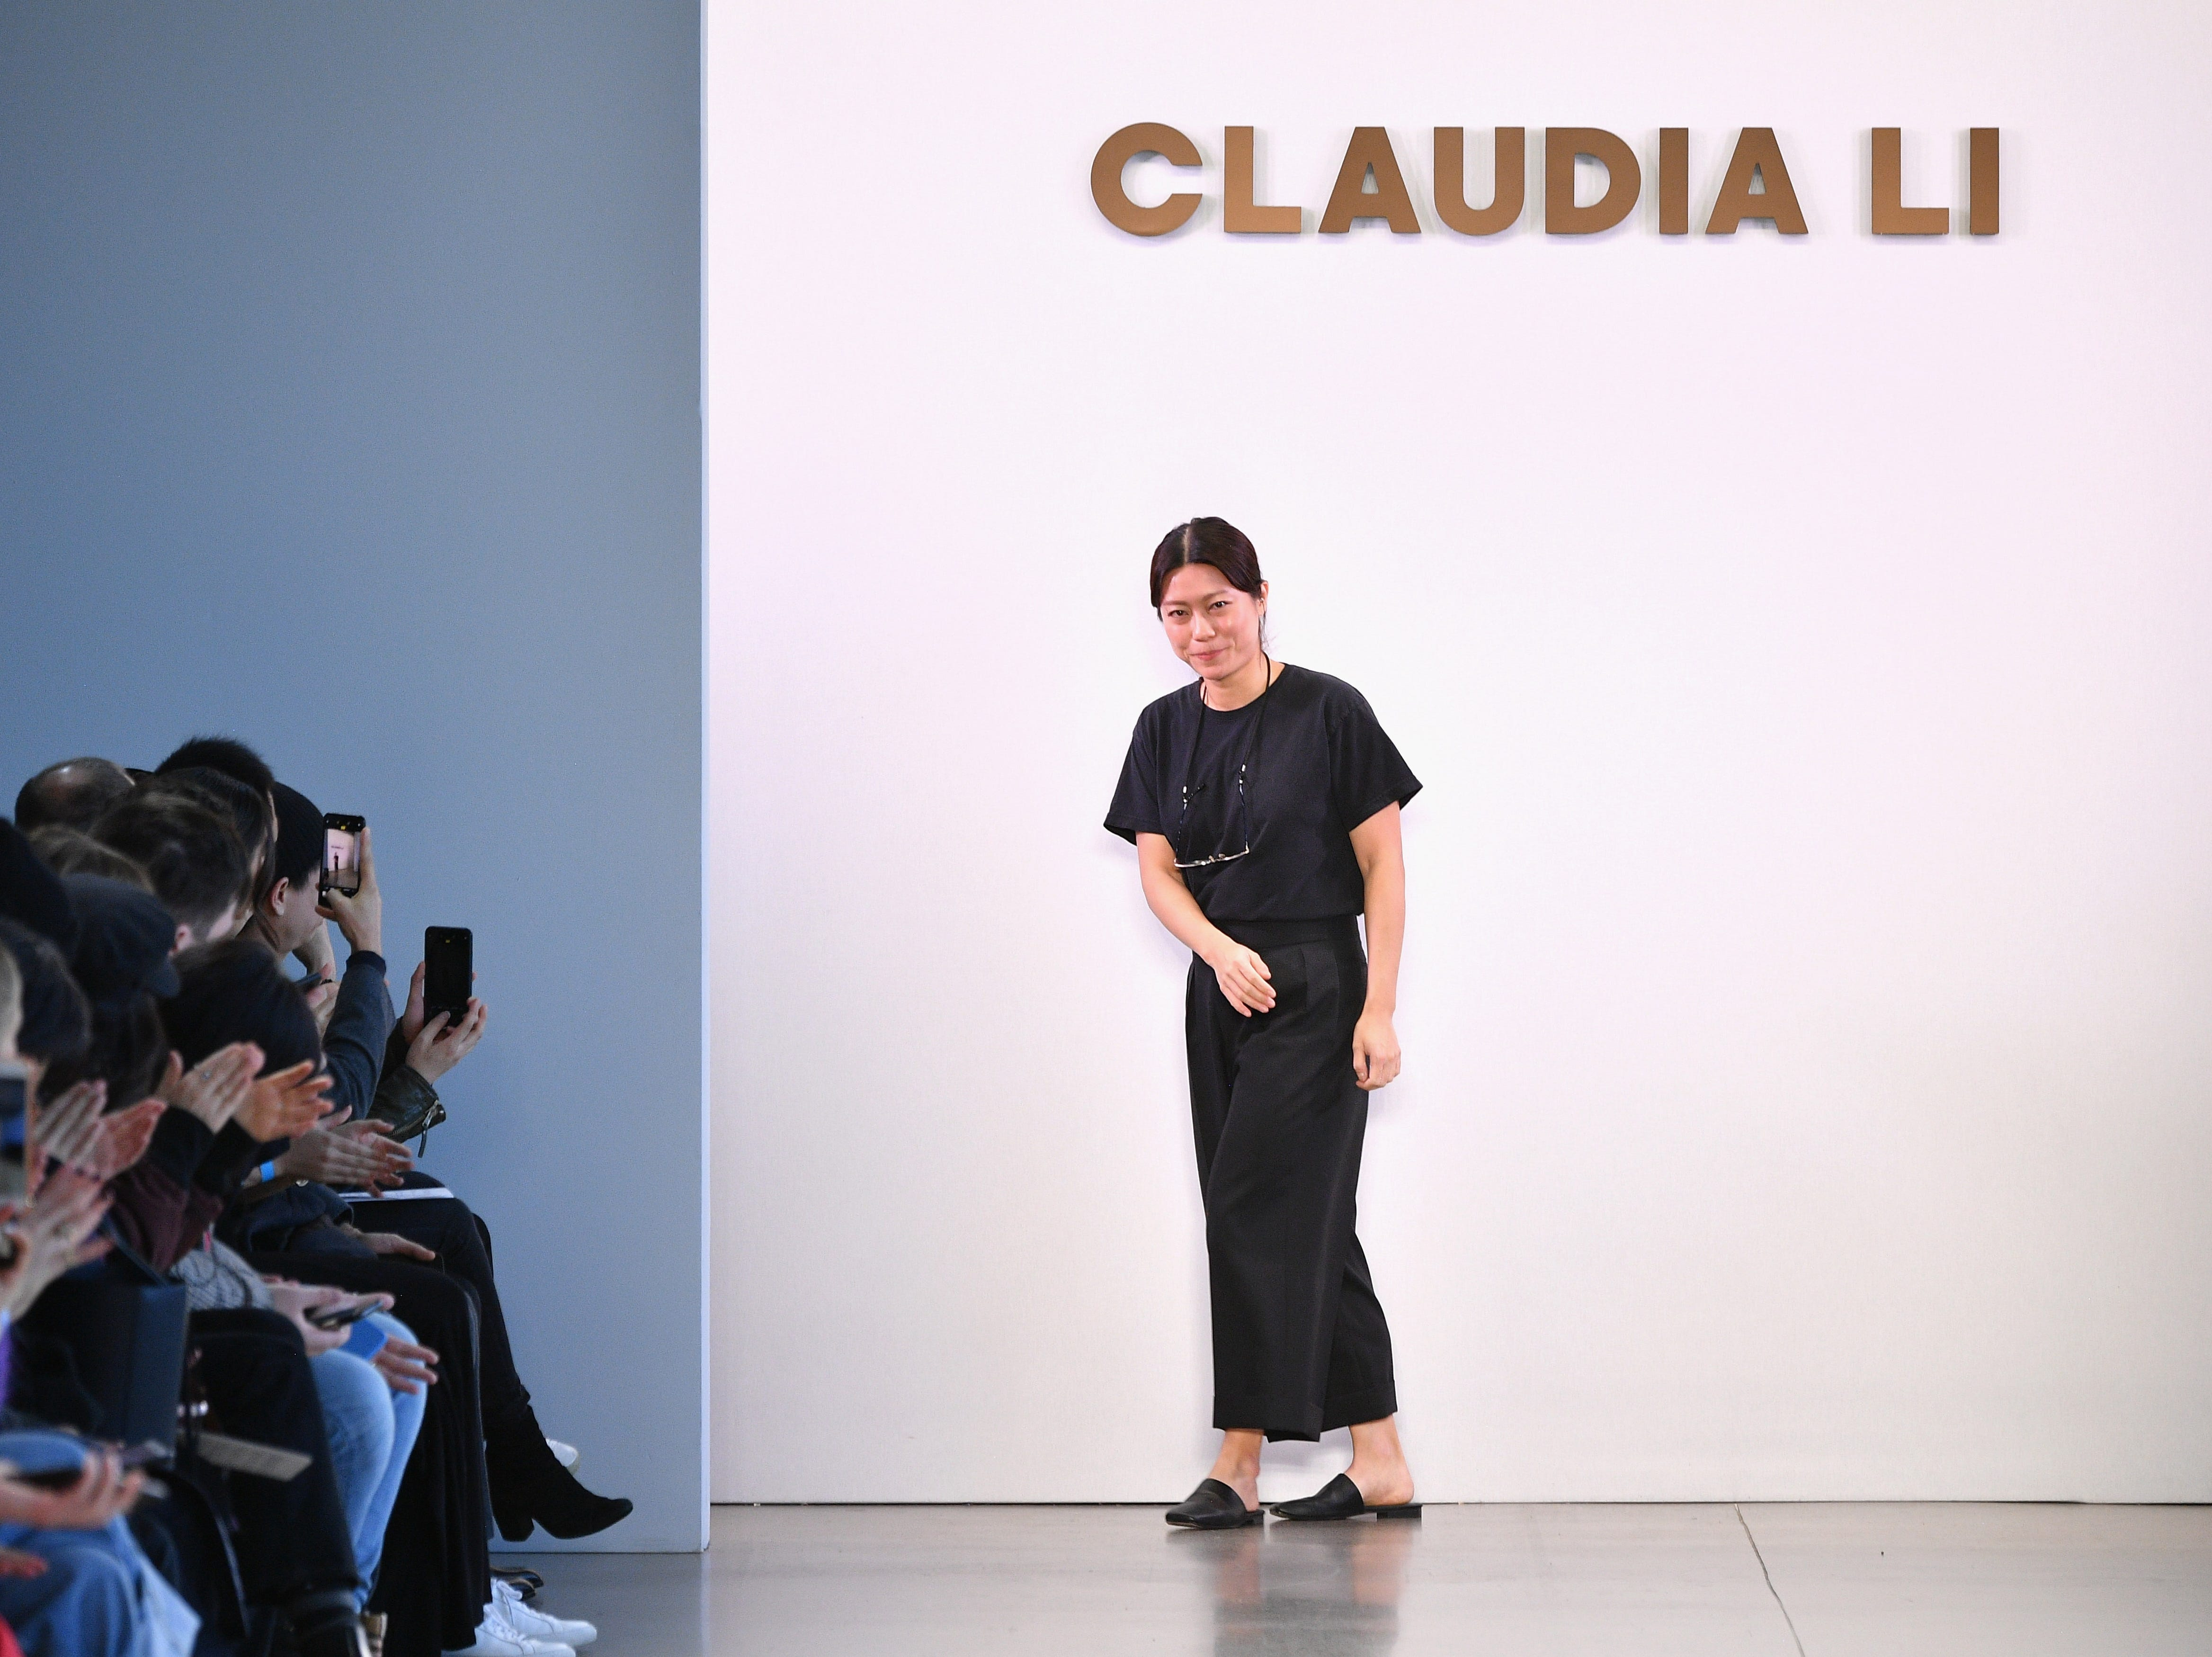 NEW YORK, NY - FEBRUARY 10:  Designer Claudia Li walks the runway for the Claudia Li fashion show during New York Fashion Week: The Shows at Gallery II at Spring Studios on February 10, 2019 in New York City.  (Photo by Dia Dipasupil/Getty Images for NYFW: The Shows) ORG XMIT: 775290850 ORIG FILE ID: 1097104908